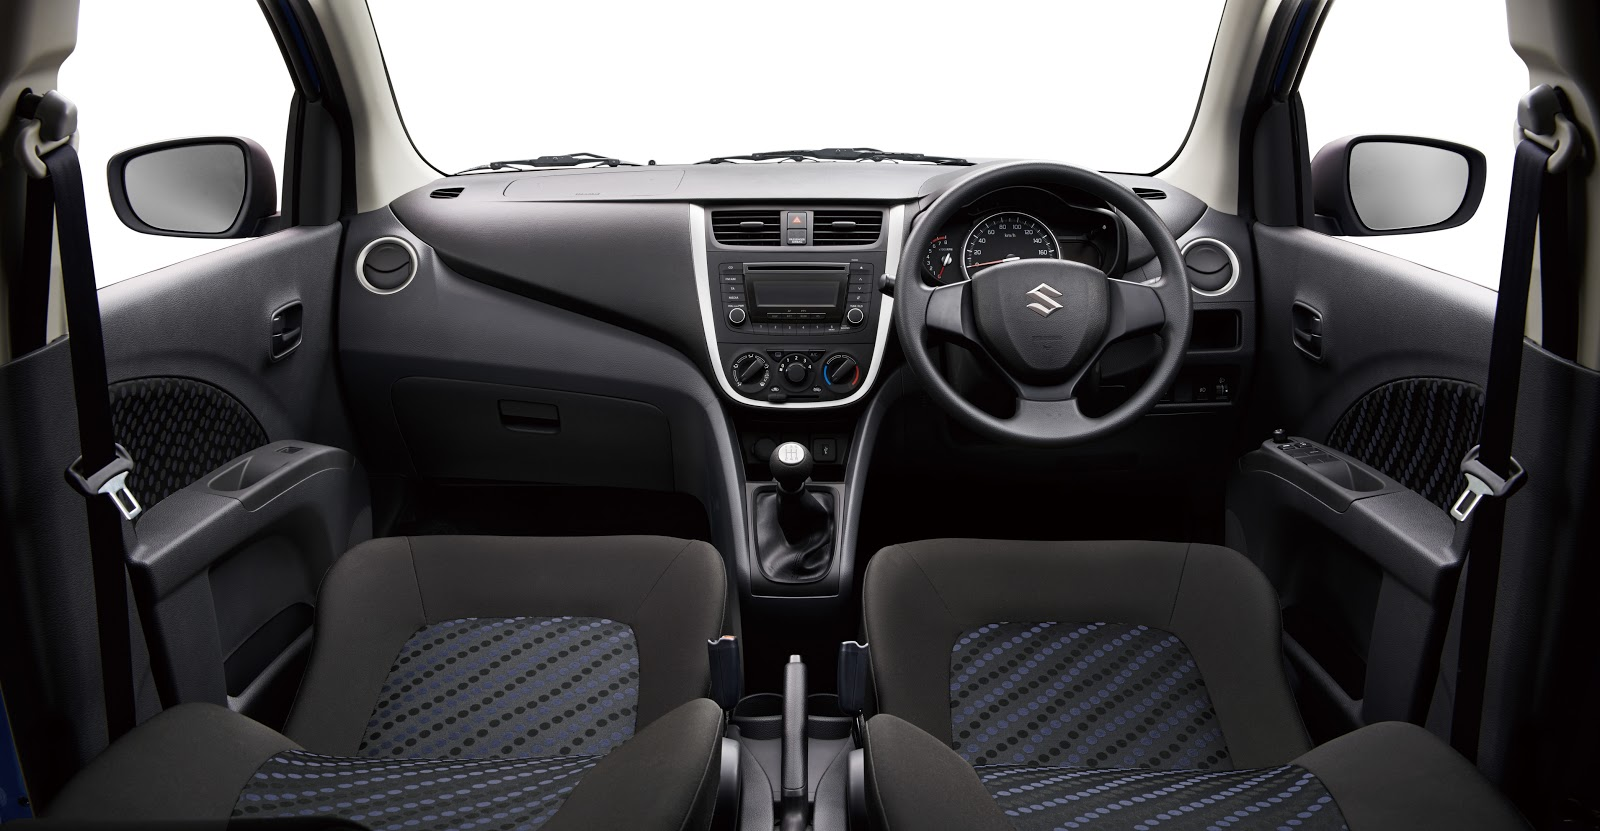 Myths about Suzuki cars that could affect buying a Suzuki